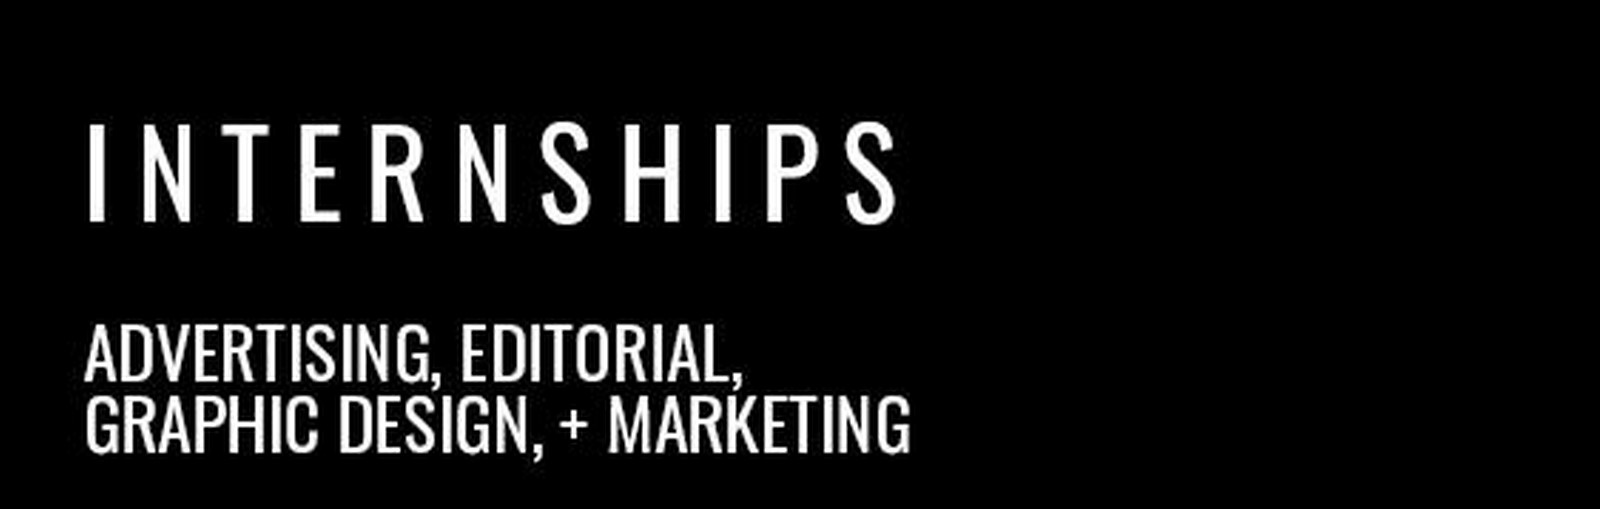 8 Internships for students interested in Architectural Journalism - Sheet7